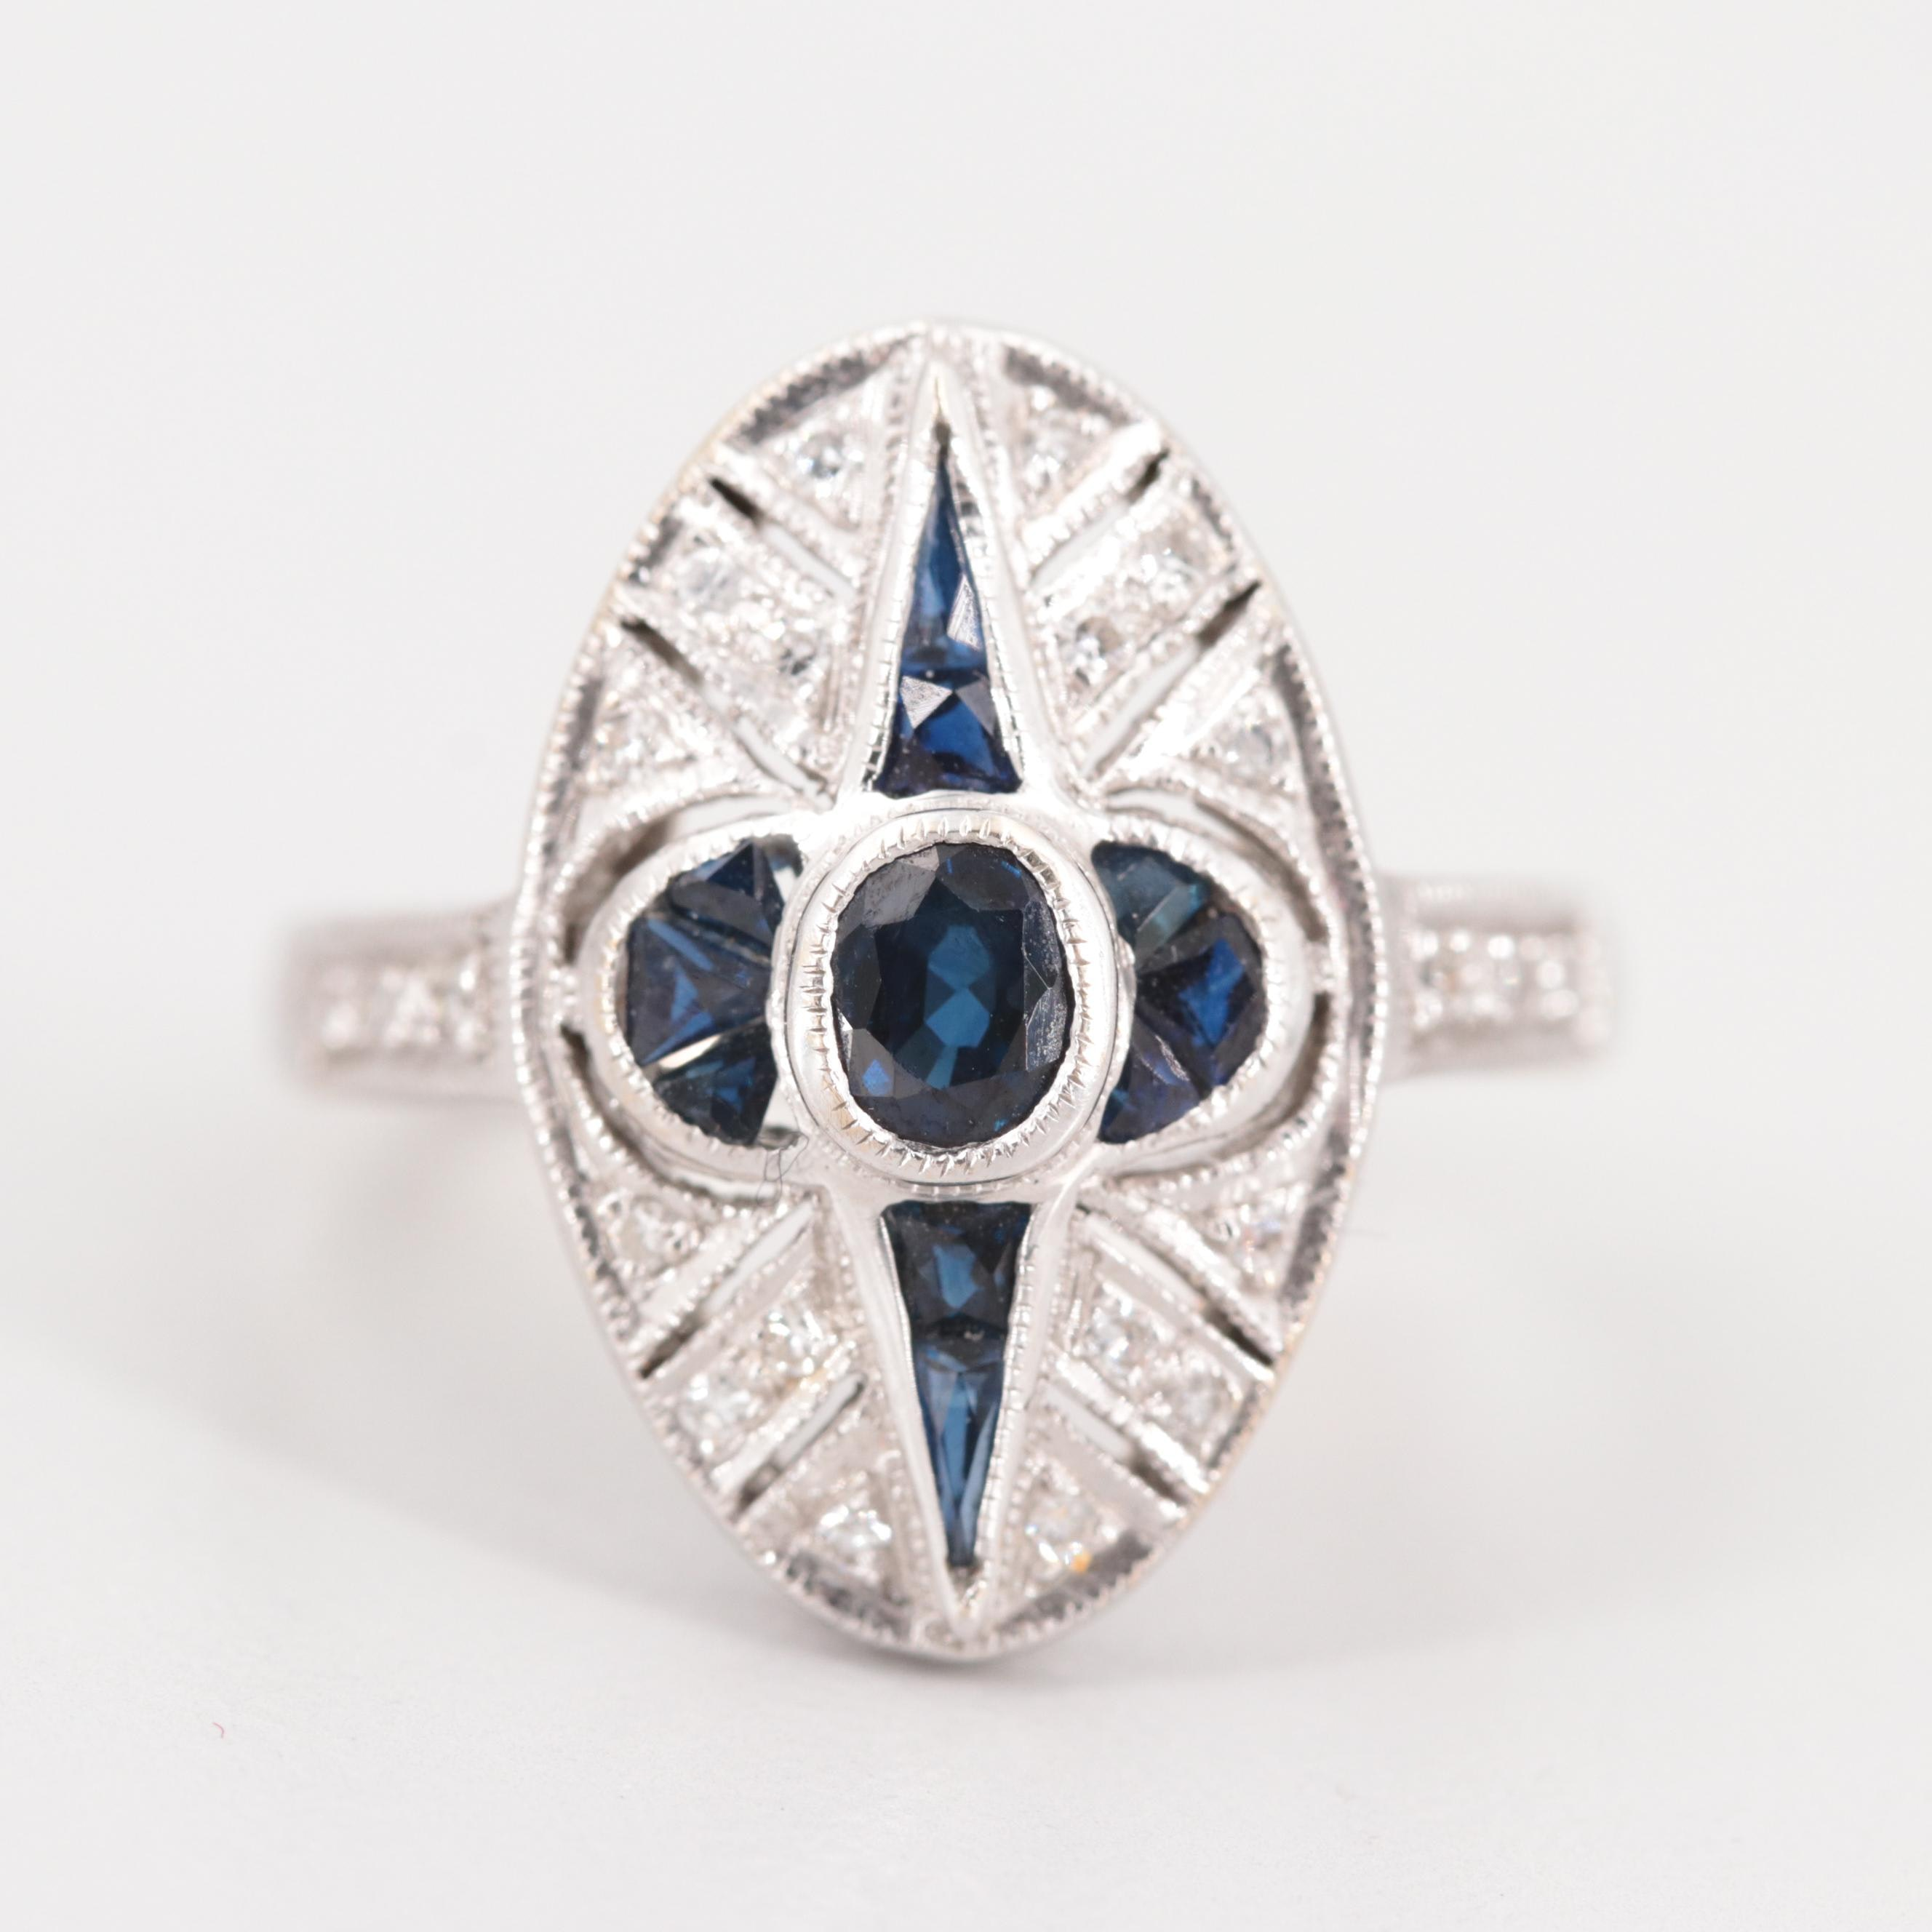 Jewelry, Watches, Coins, Decor and More